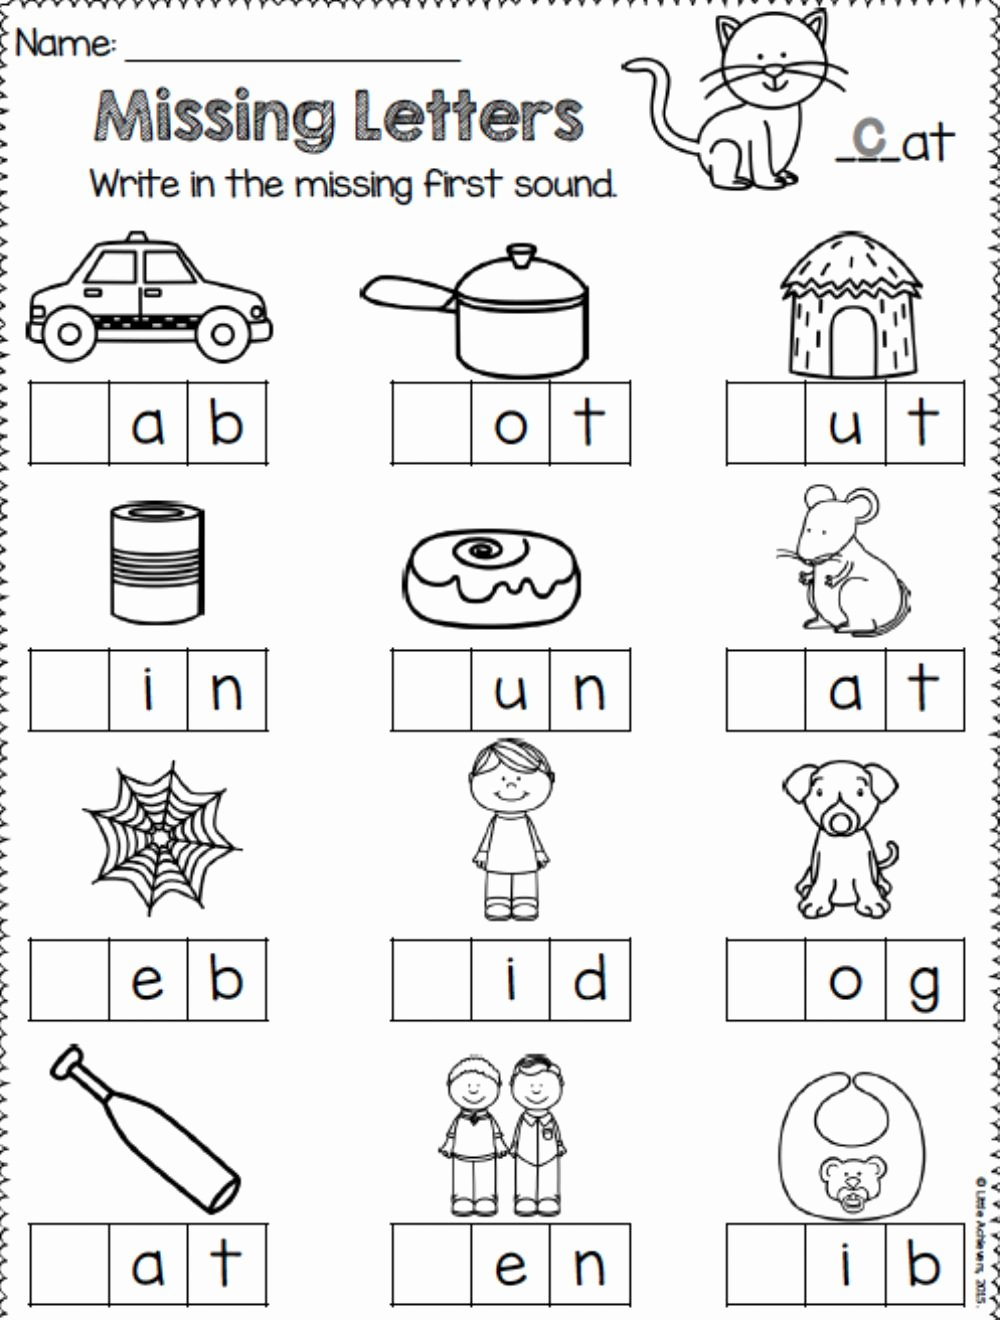 Missing Letters Worksheet for Kindergarten Fresh Missing Letters Interactive Worksheet